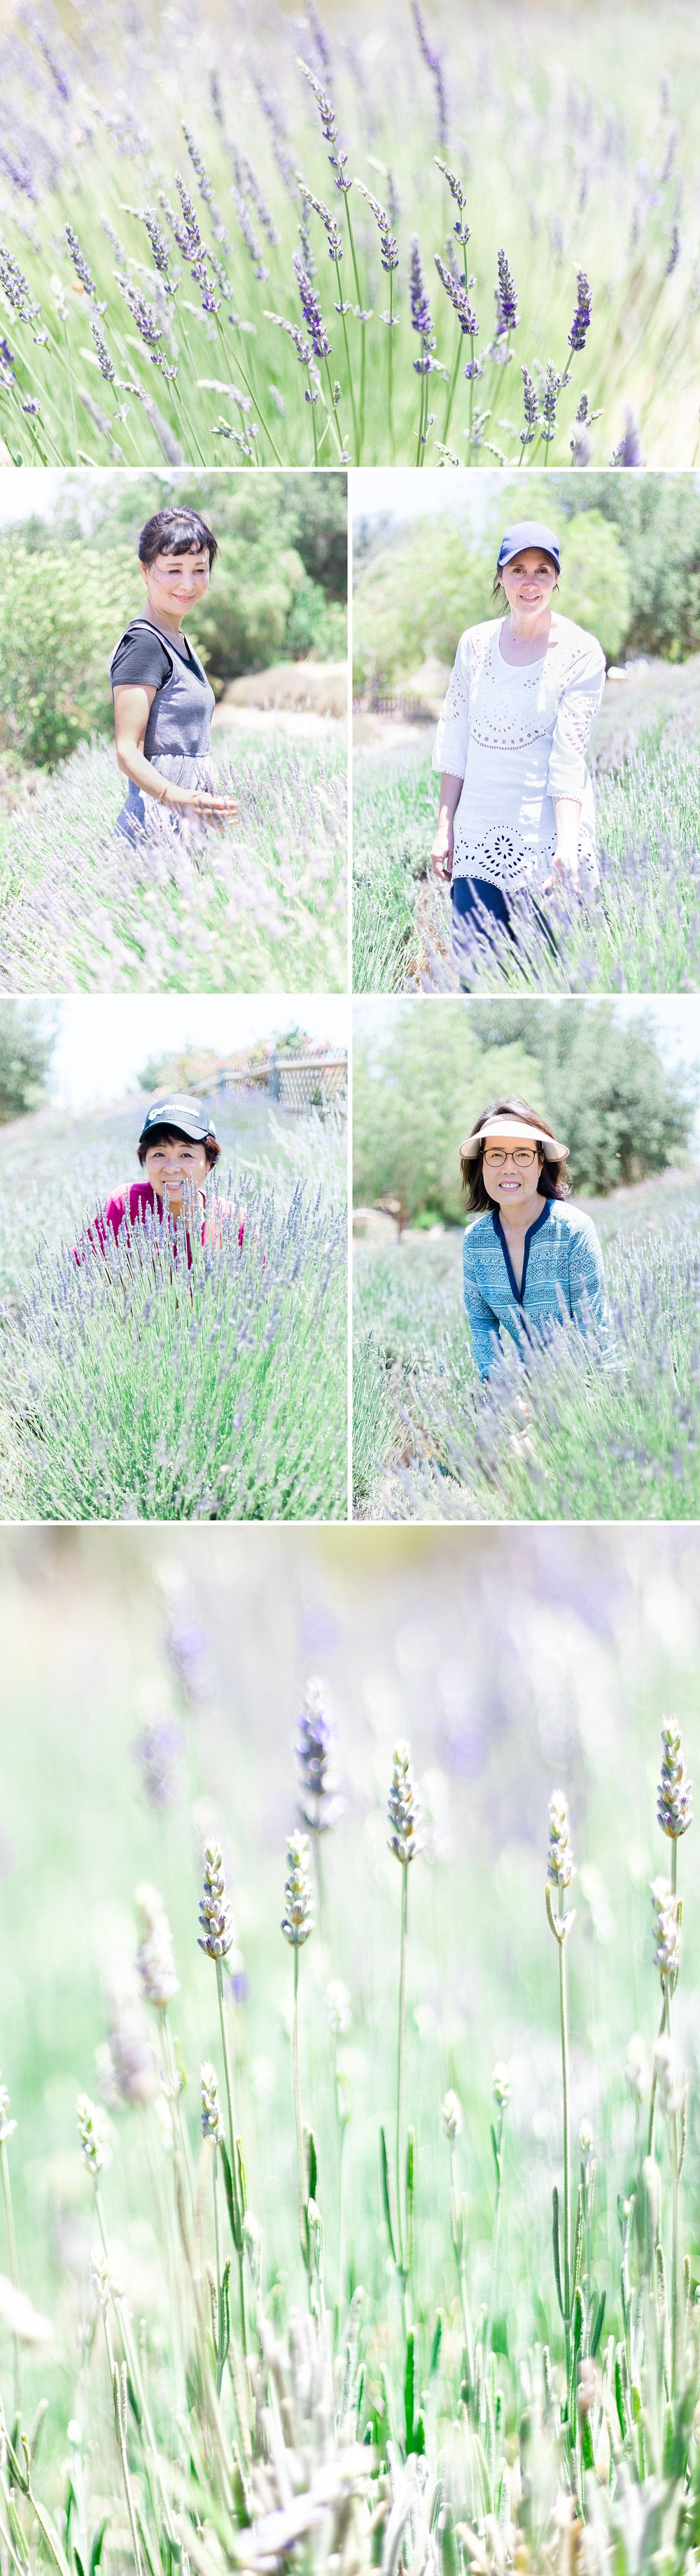 Lavender_Farm_Post_0011.jpg